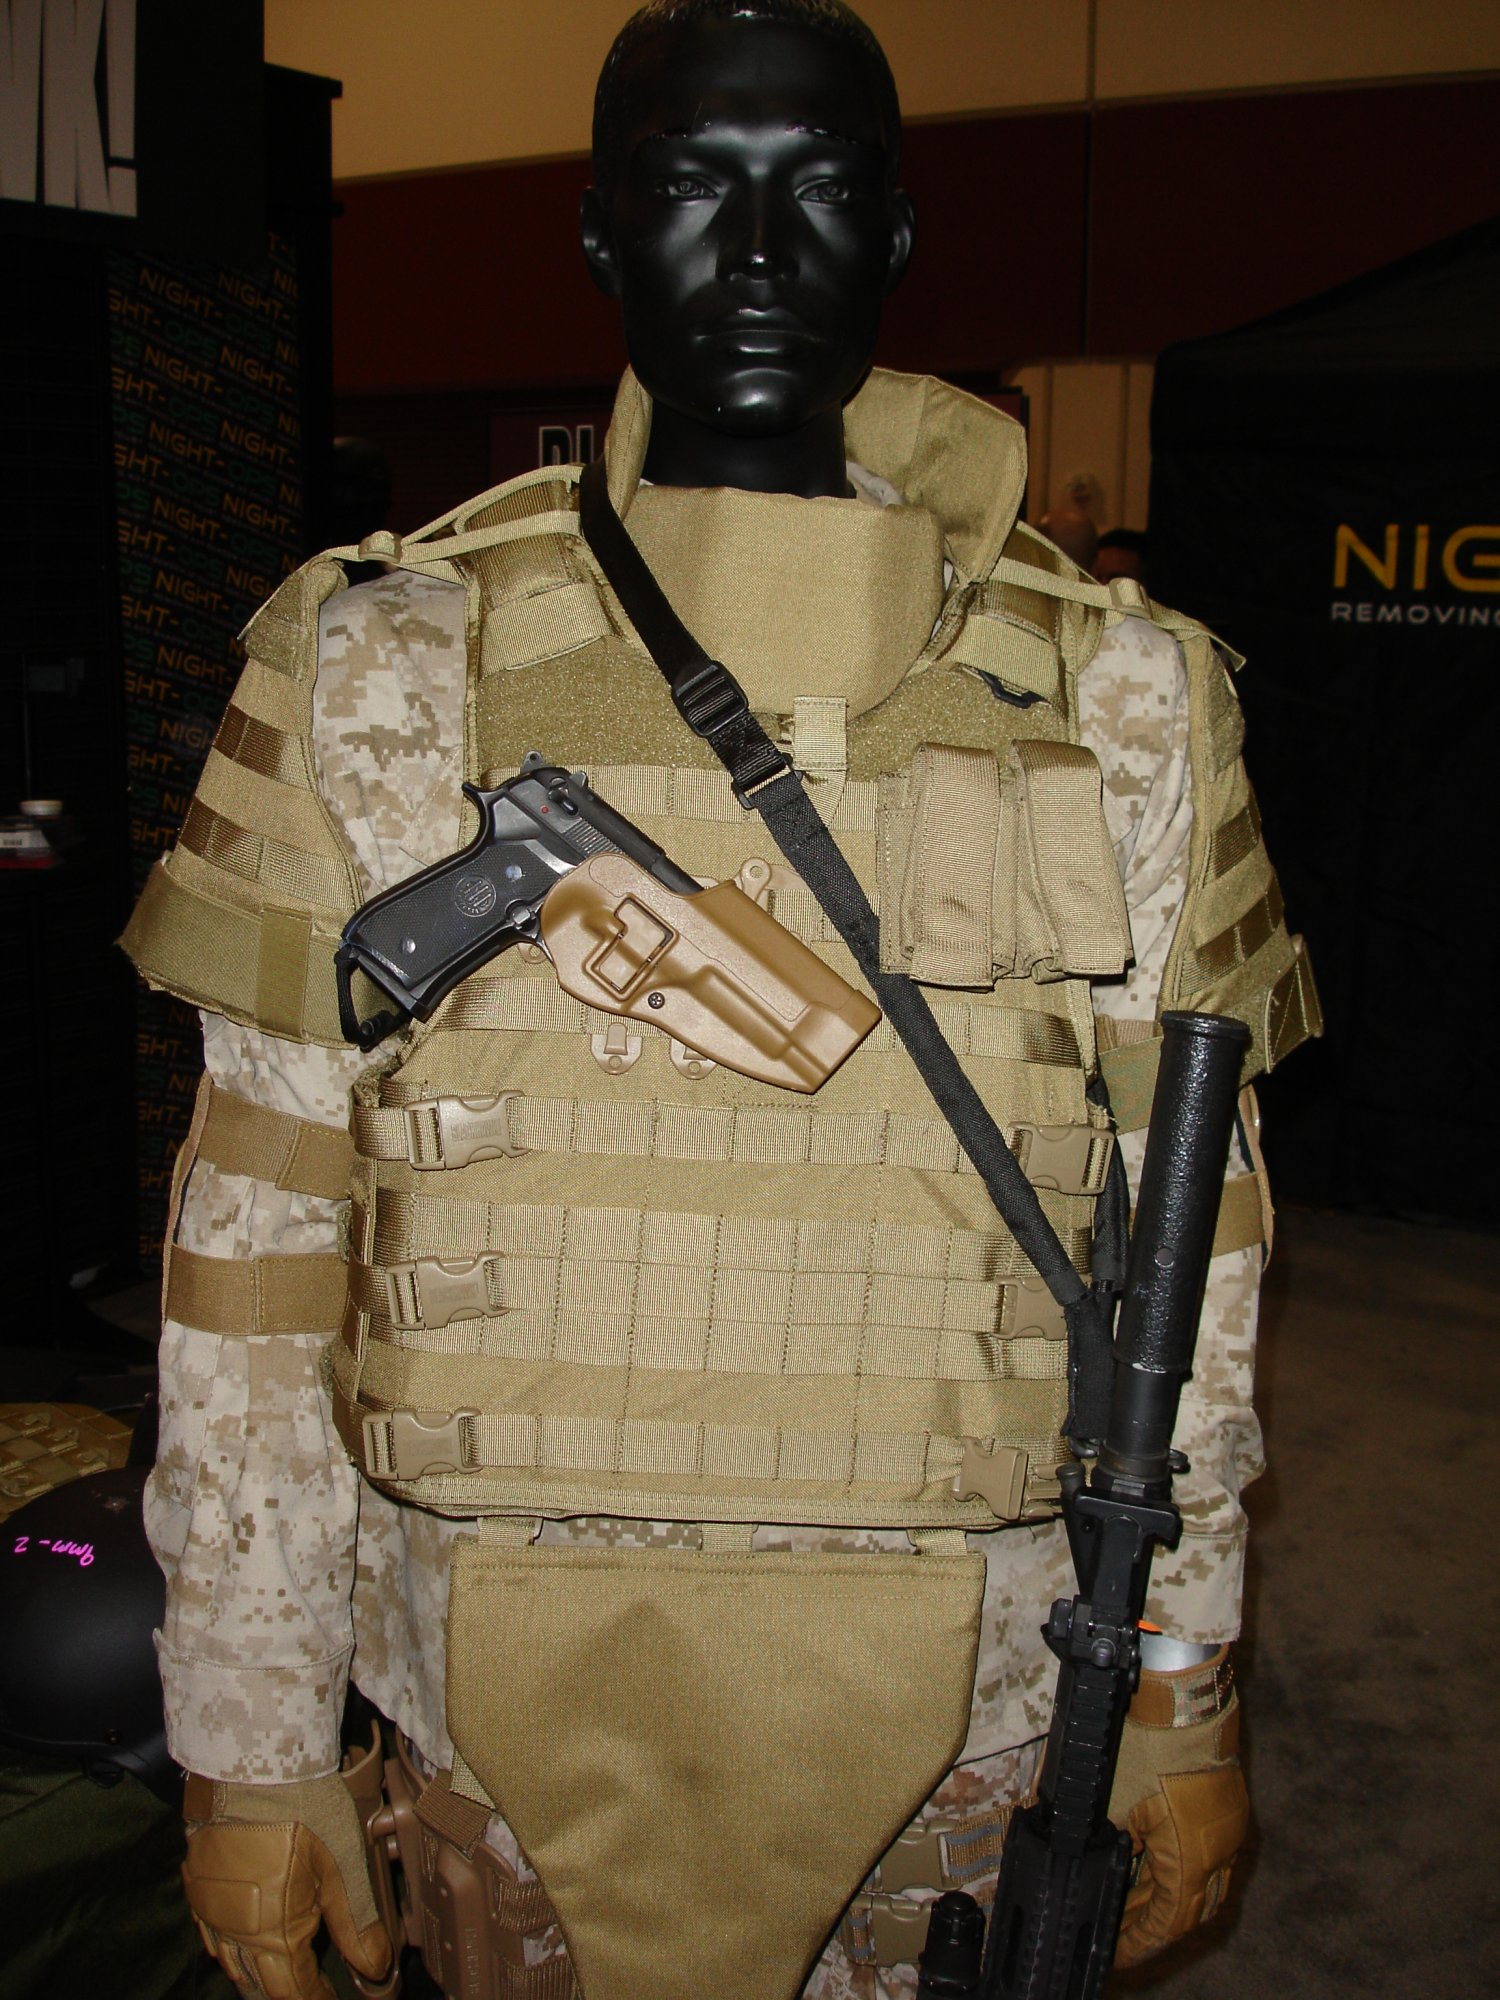 SHOT%20Show%202007%20 %20Blackhawk%20S.T.R.I.K.E.%20Cutaway%20Vest%20 %20OTV IBAS%20Body%20Armor 1 <!  :en  >DefRev Quick Hits 2: More Latest and Greatest Tactical Tech from the Show<!  :  >